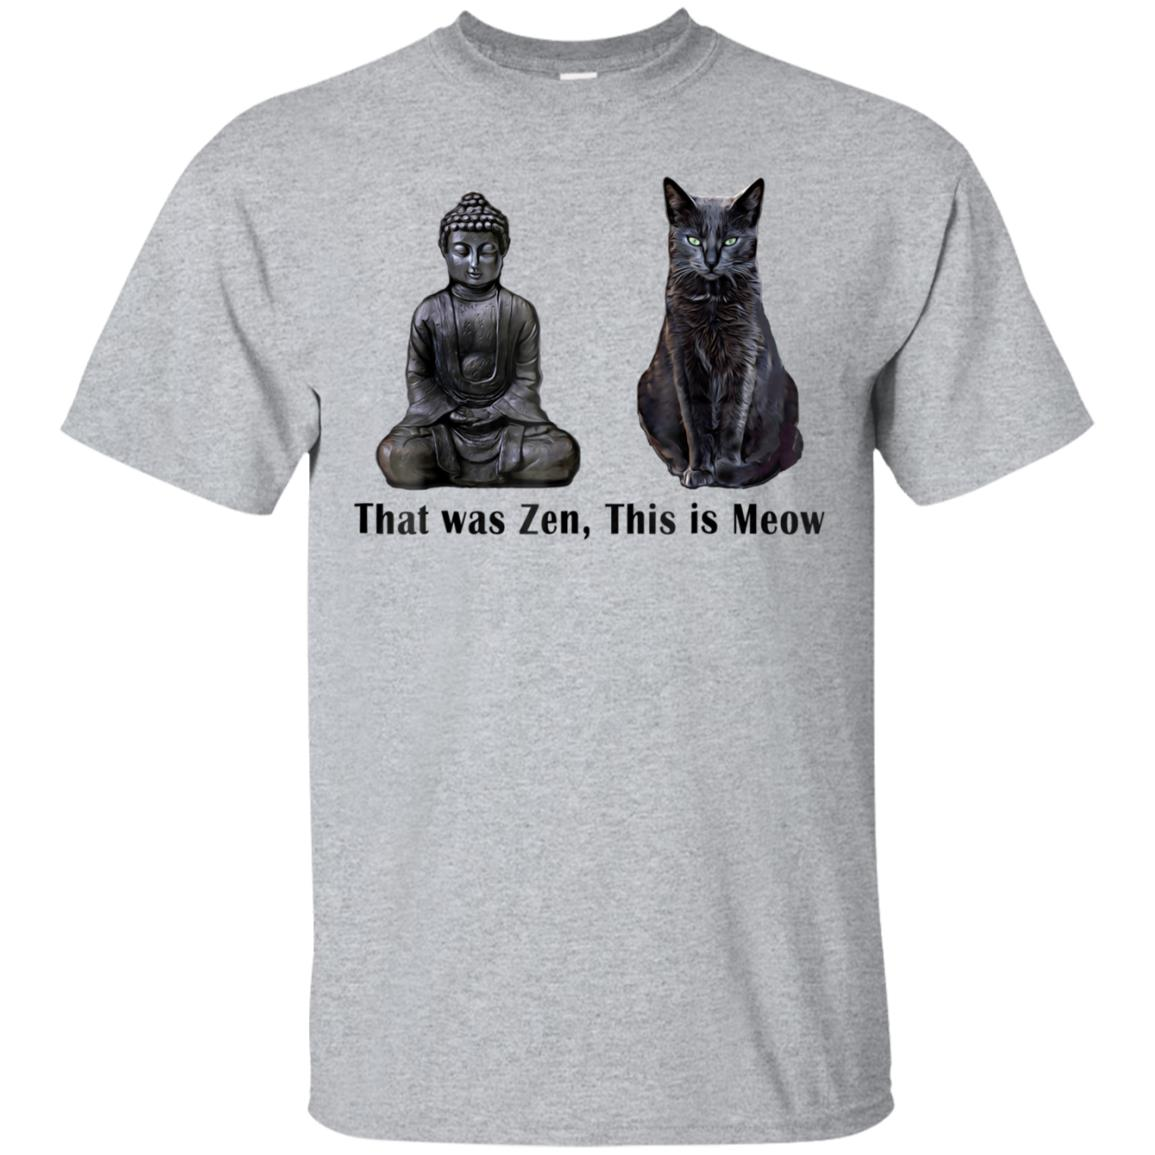 That Was Zen, This Is MEOW Cat Kitten Buddha Funny T-Shirt 99promocode